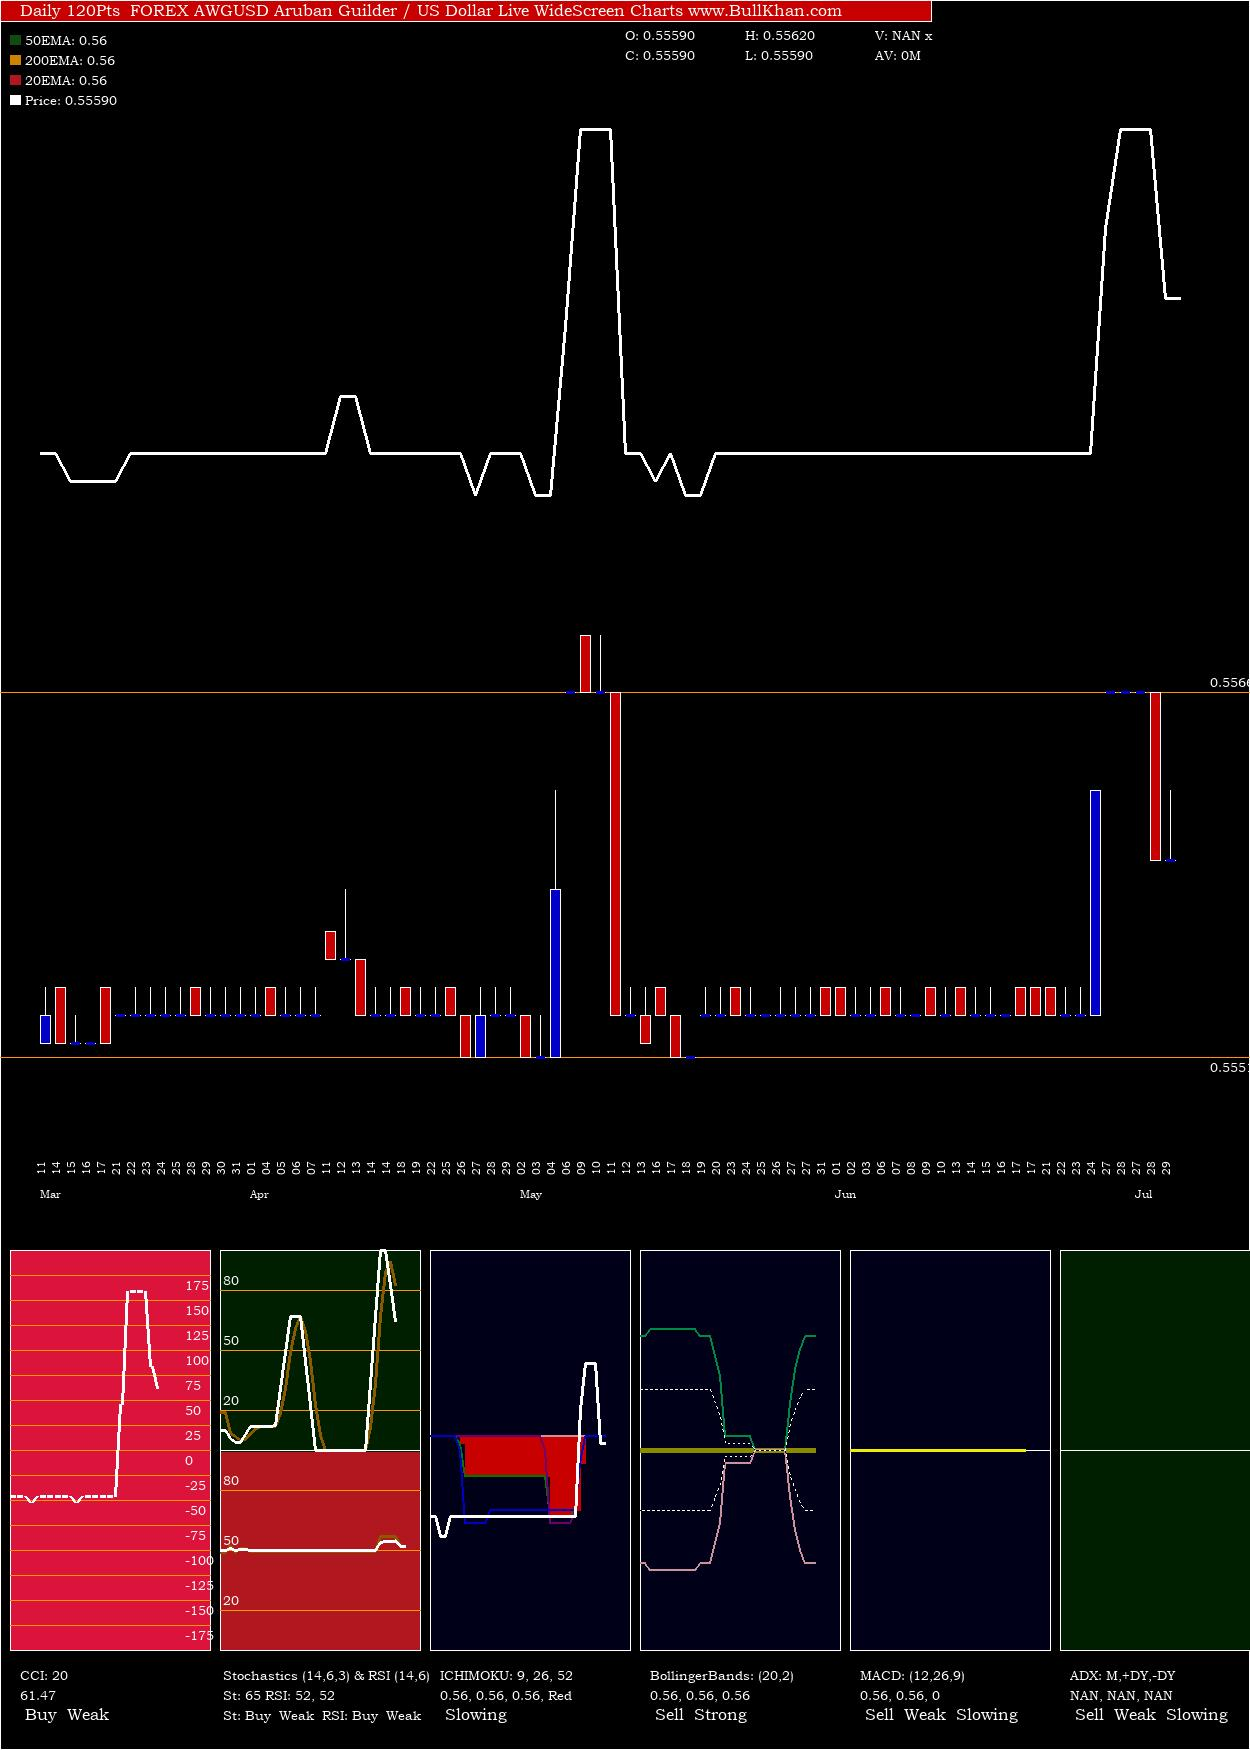 Aruban Guilder / US Dollar charts and indicators